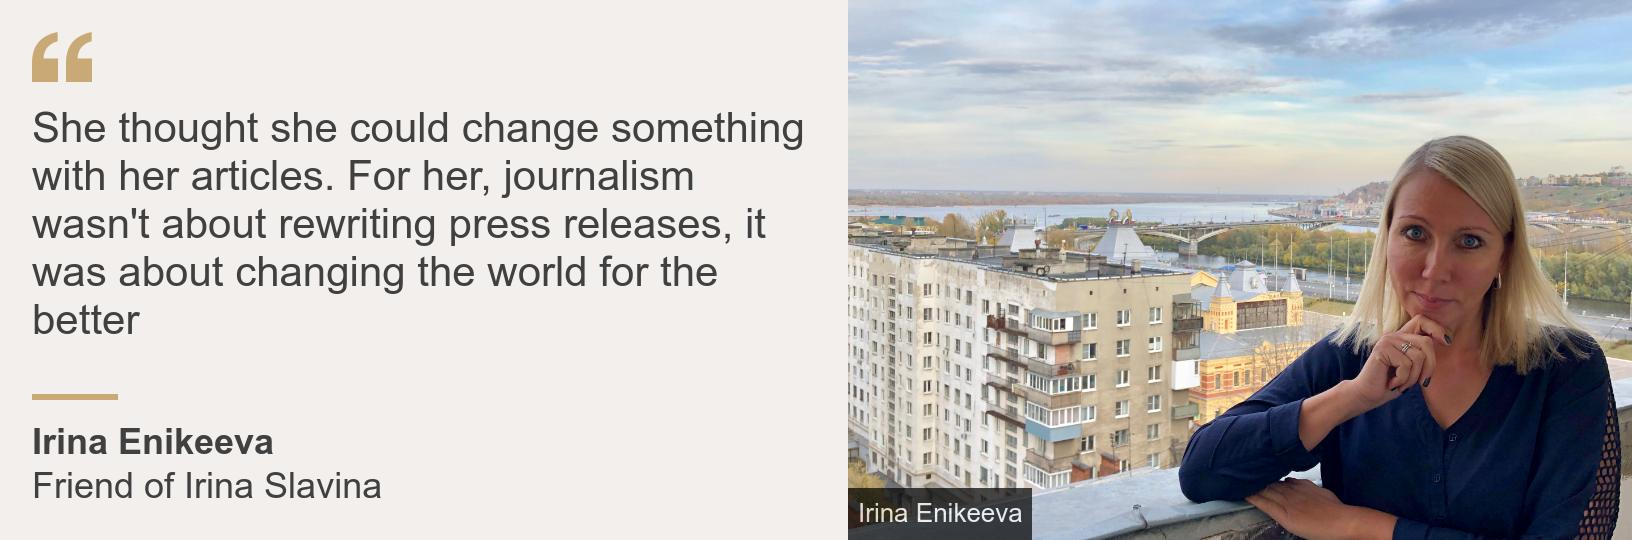 """""""She thought she could change something with her articles. For her, journalism wasn't about rewriting press releases, it was about changing the world for the better"""", Source: Irina Enikeeva, Source description: Friend of Irina Slavina, Image: Irina Enikeeva"""